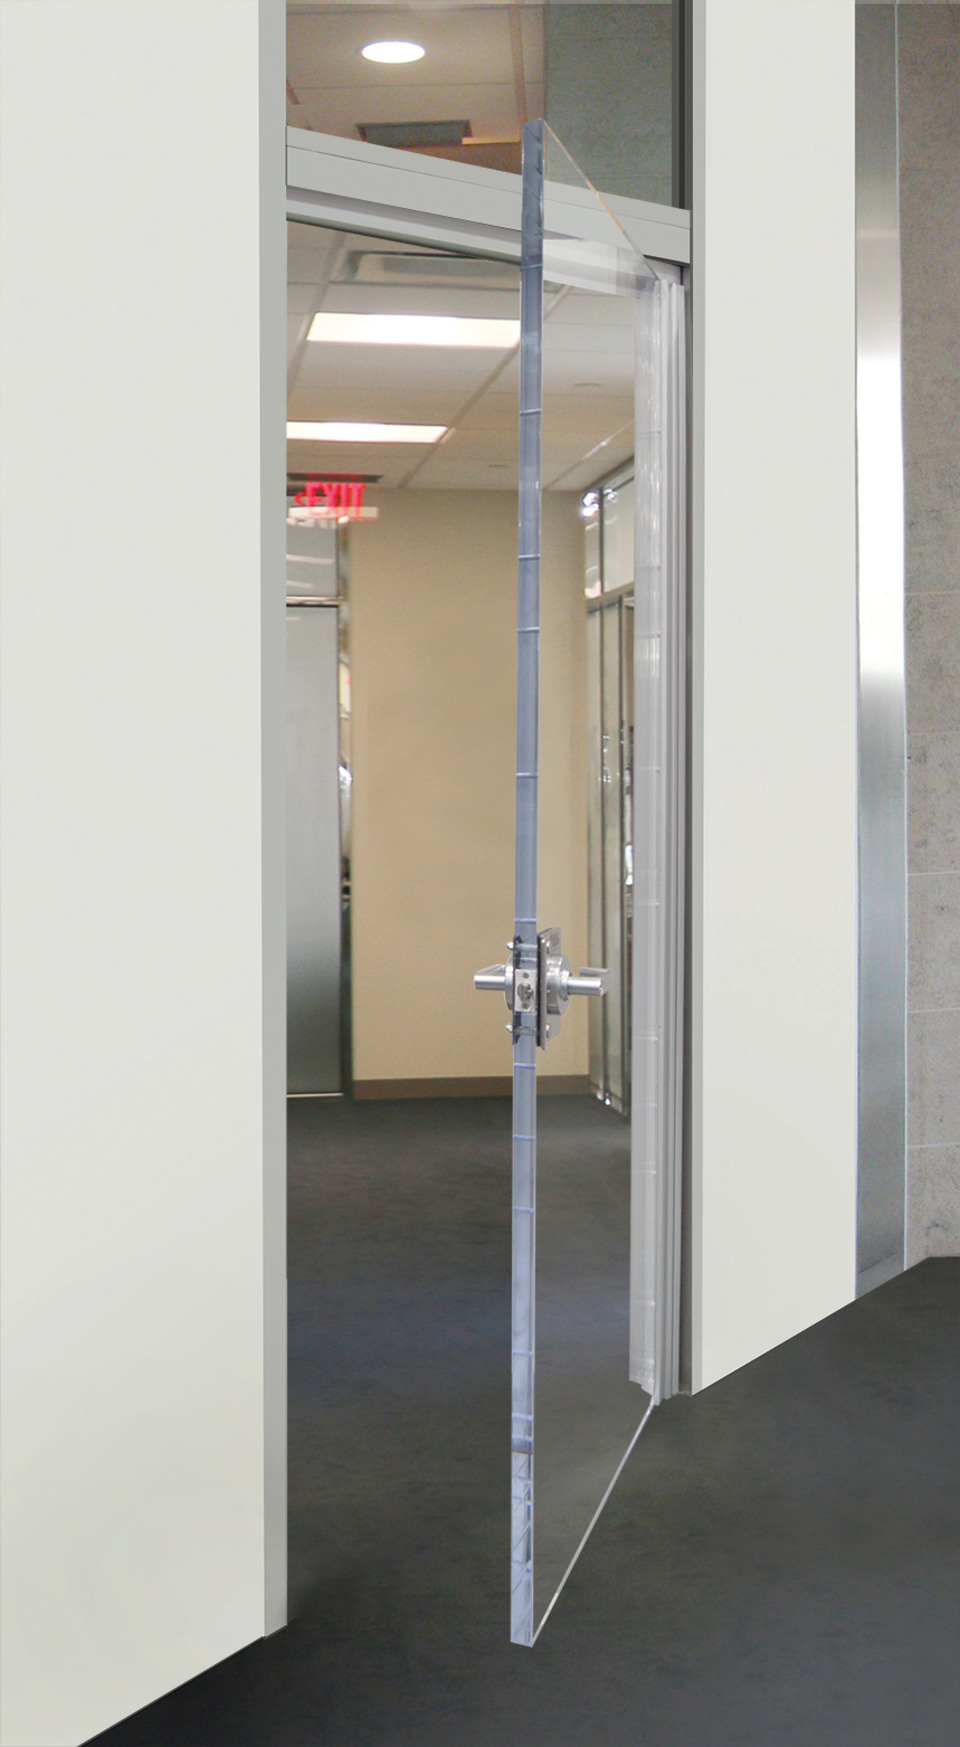 Continuous Hinges: Ensuring a More Secure, Fire Code